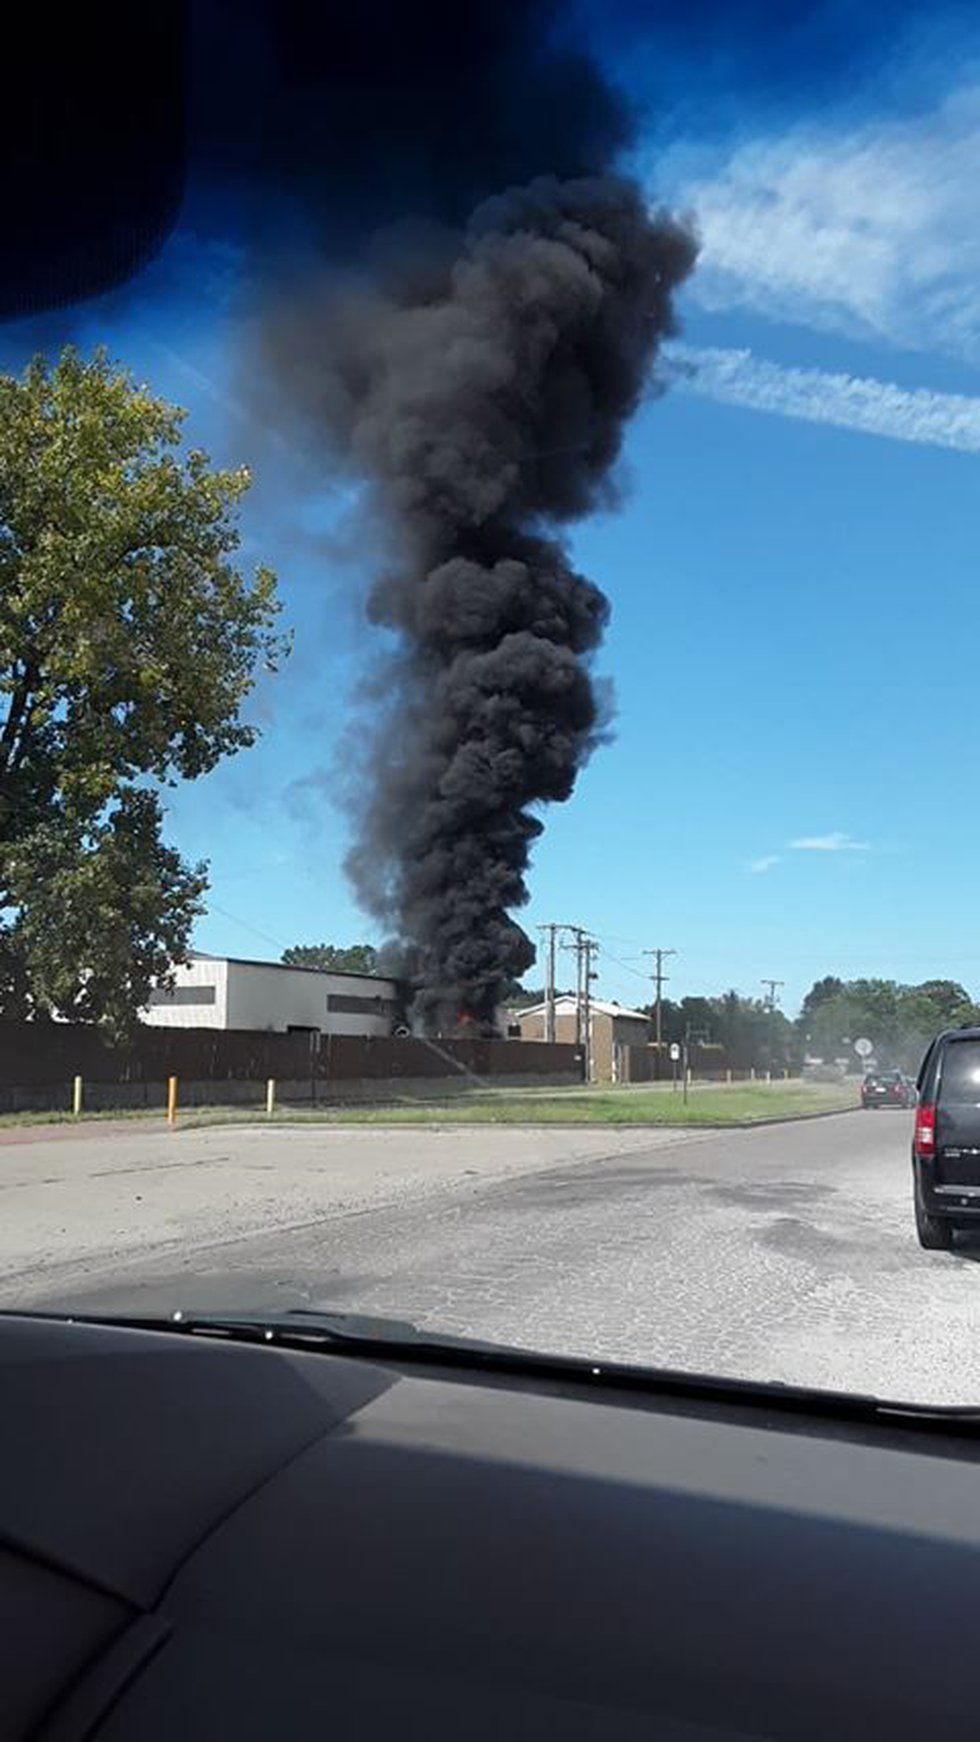 We received this photo not far from the fire from a viewer on Facebook.